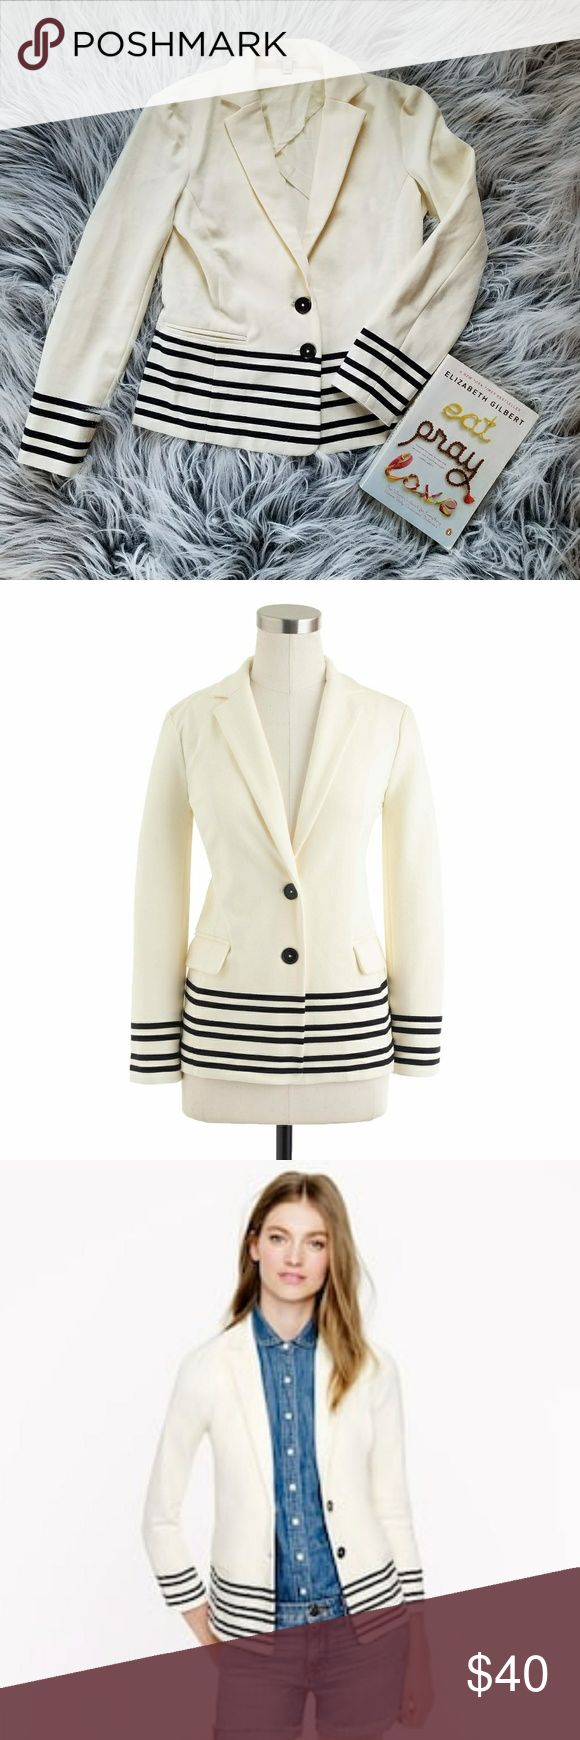 J crew maritime blazer with navy stripes Super cute J Crew blazer. Ivory with navy stripes and two buttons. Dress up or down perfect for work and going out! Excellent perfect condition.  From the J Crew site- Crafted from a knit ponte cotton that's soft and structured, our maritime blazer is super flatteringandsuper comfortable. It's updated for the season with a nautical-inspired placed stripe, along with partial lining: key to creating a smooth but slim silhouette, it's a dapper detail…